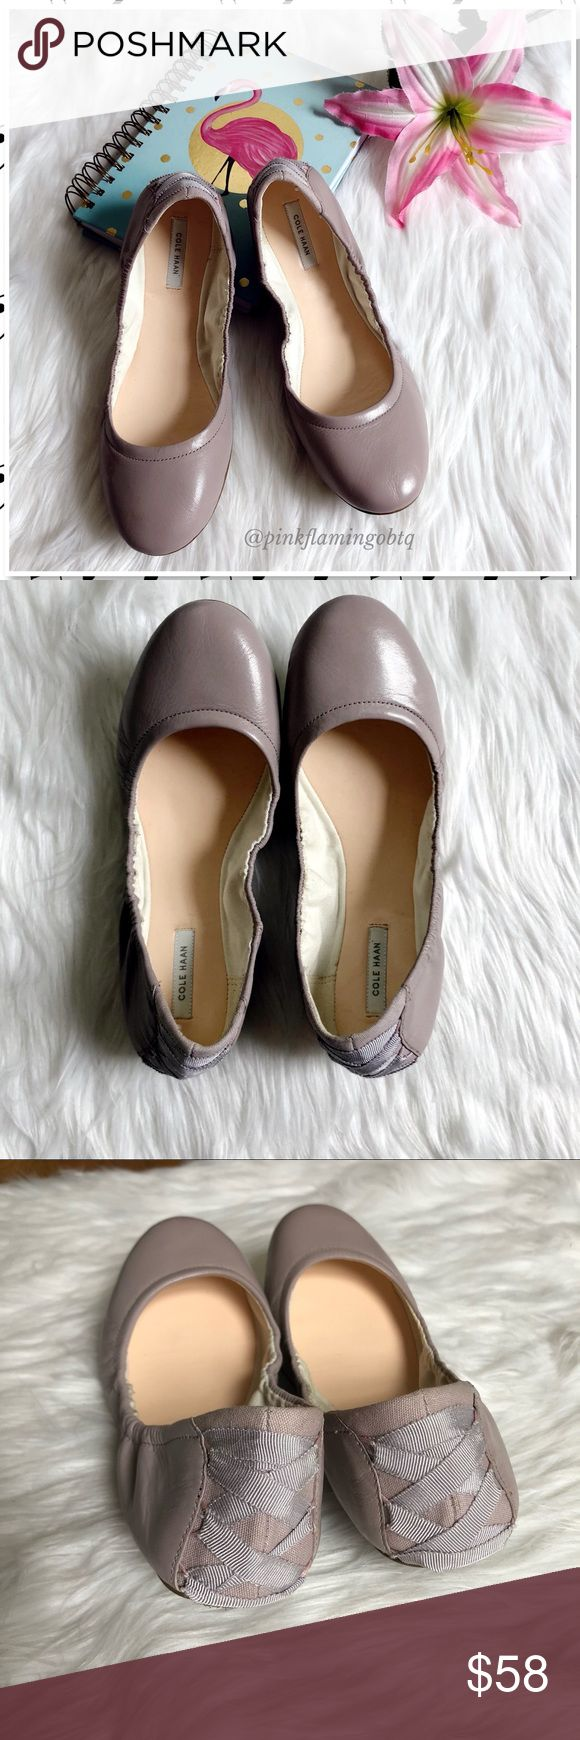 Cole Haan Grand.OS Lavender Scrunch Ballet Flats 7 Cole Haan Grand.OS Lavender Leather Scrunch Ballet Flats. Super comfortable flats from Cole Haan features a cushioned footbed, Leather upper with elasticized sides for a snug perfect foot fit and rubber heel/footbed bottoms for traction. Matching light lavender ribbon lacing up heel. Excellent used condition. Only signs of wear is slight wear to leather on bottom of shoe. Upper is flawless. Photos are best descriptors. Perfect for the Spring…